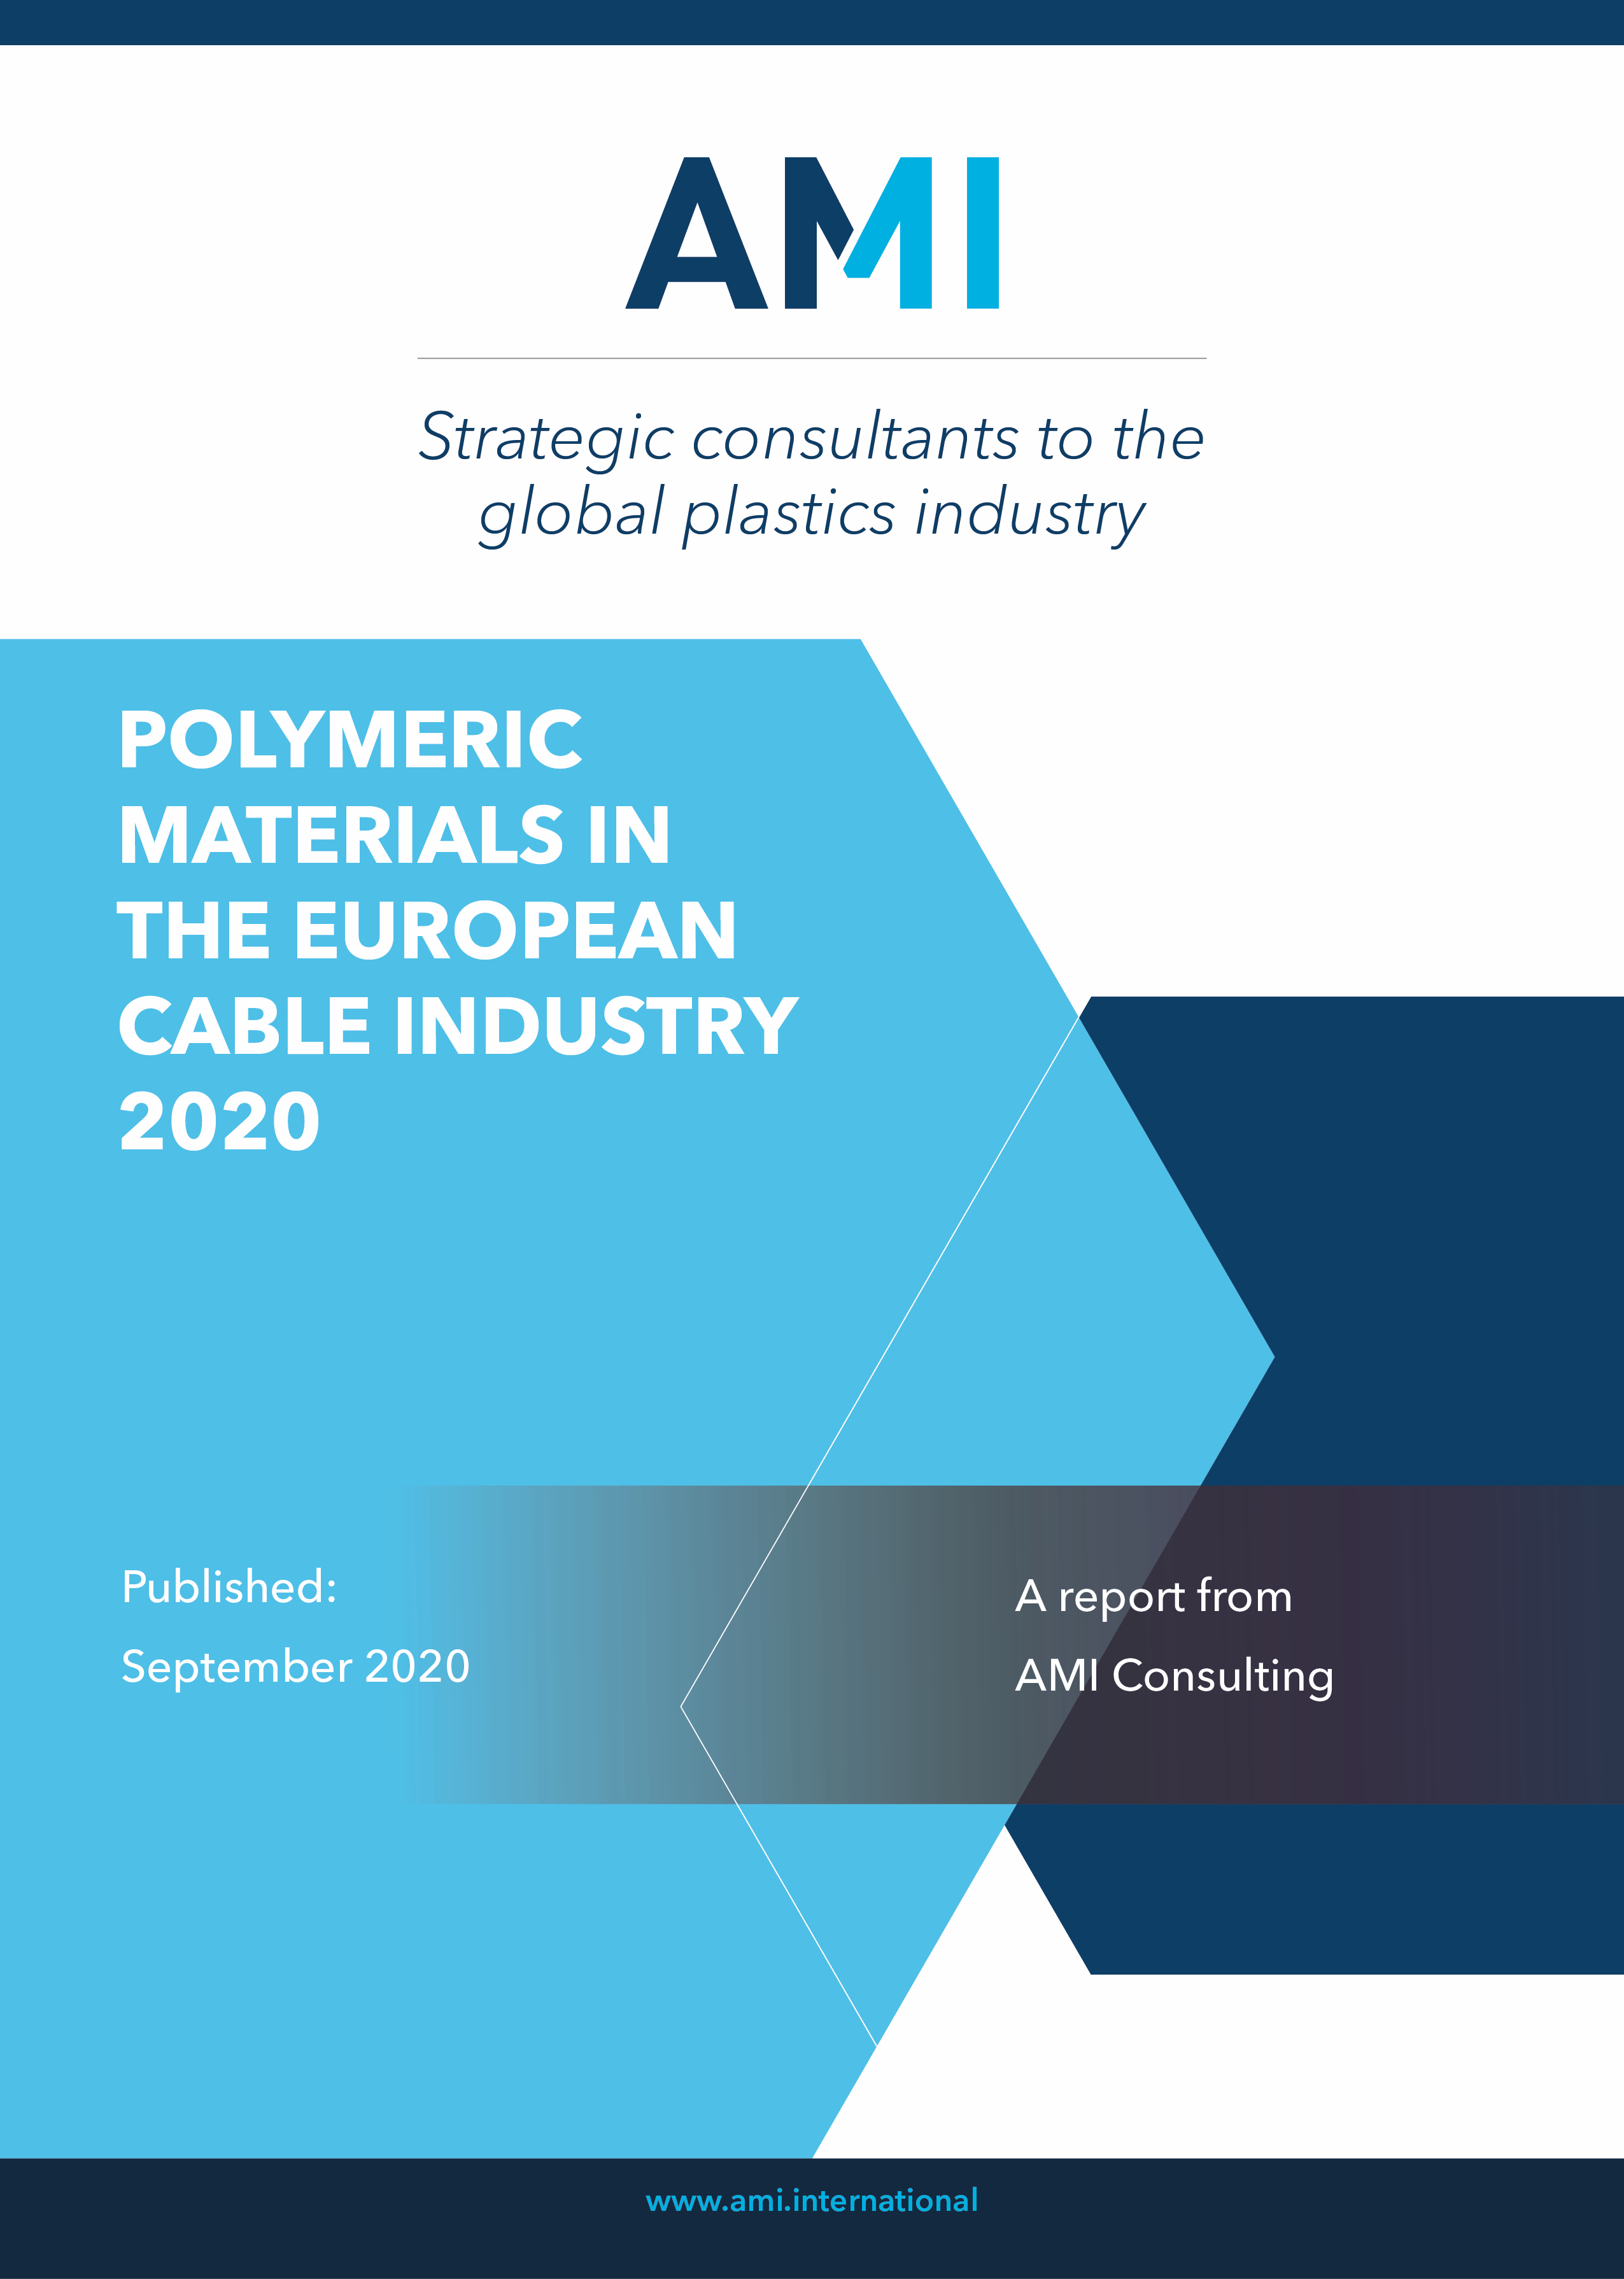 Polymeric materials in the European cable industry 2021